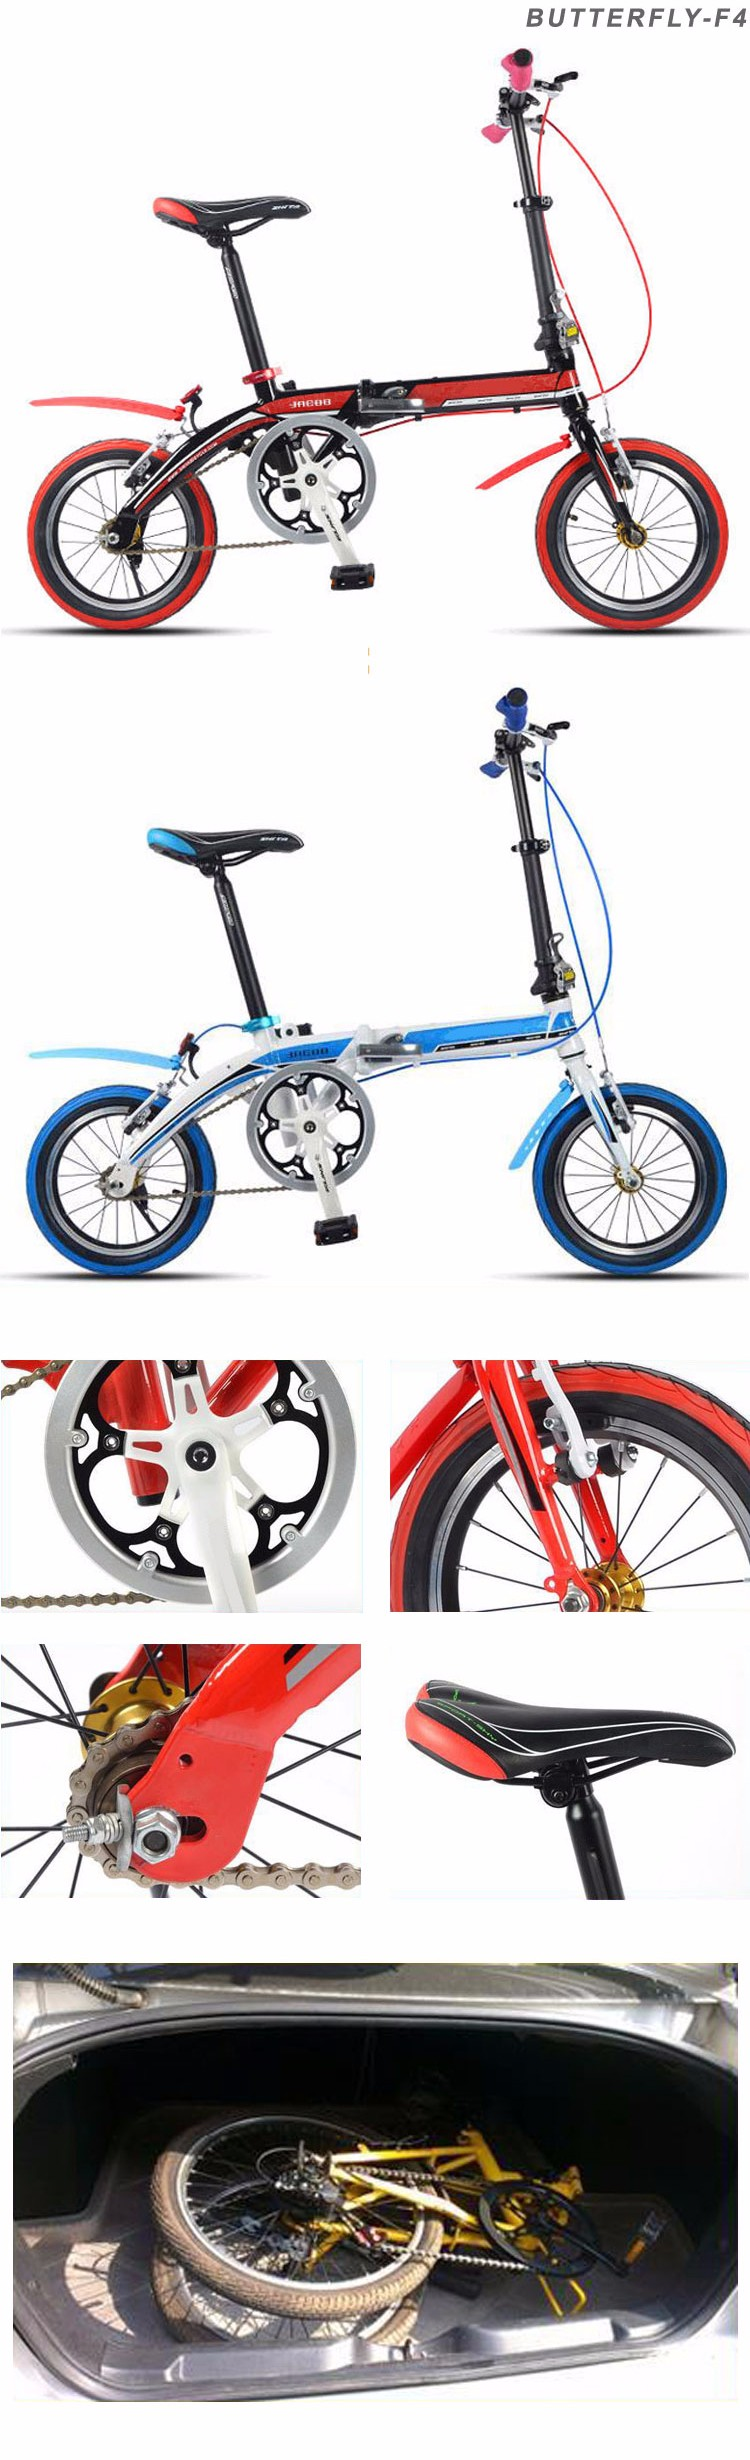 Dynabike Butterfly F4 - 14 Inch small Folding Electric Bicycle - 8AH Lithium Battery